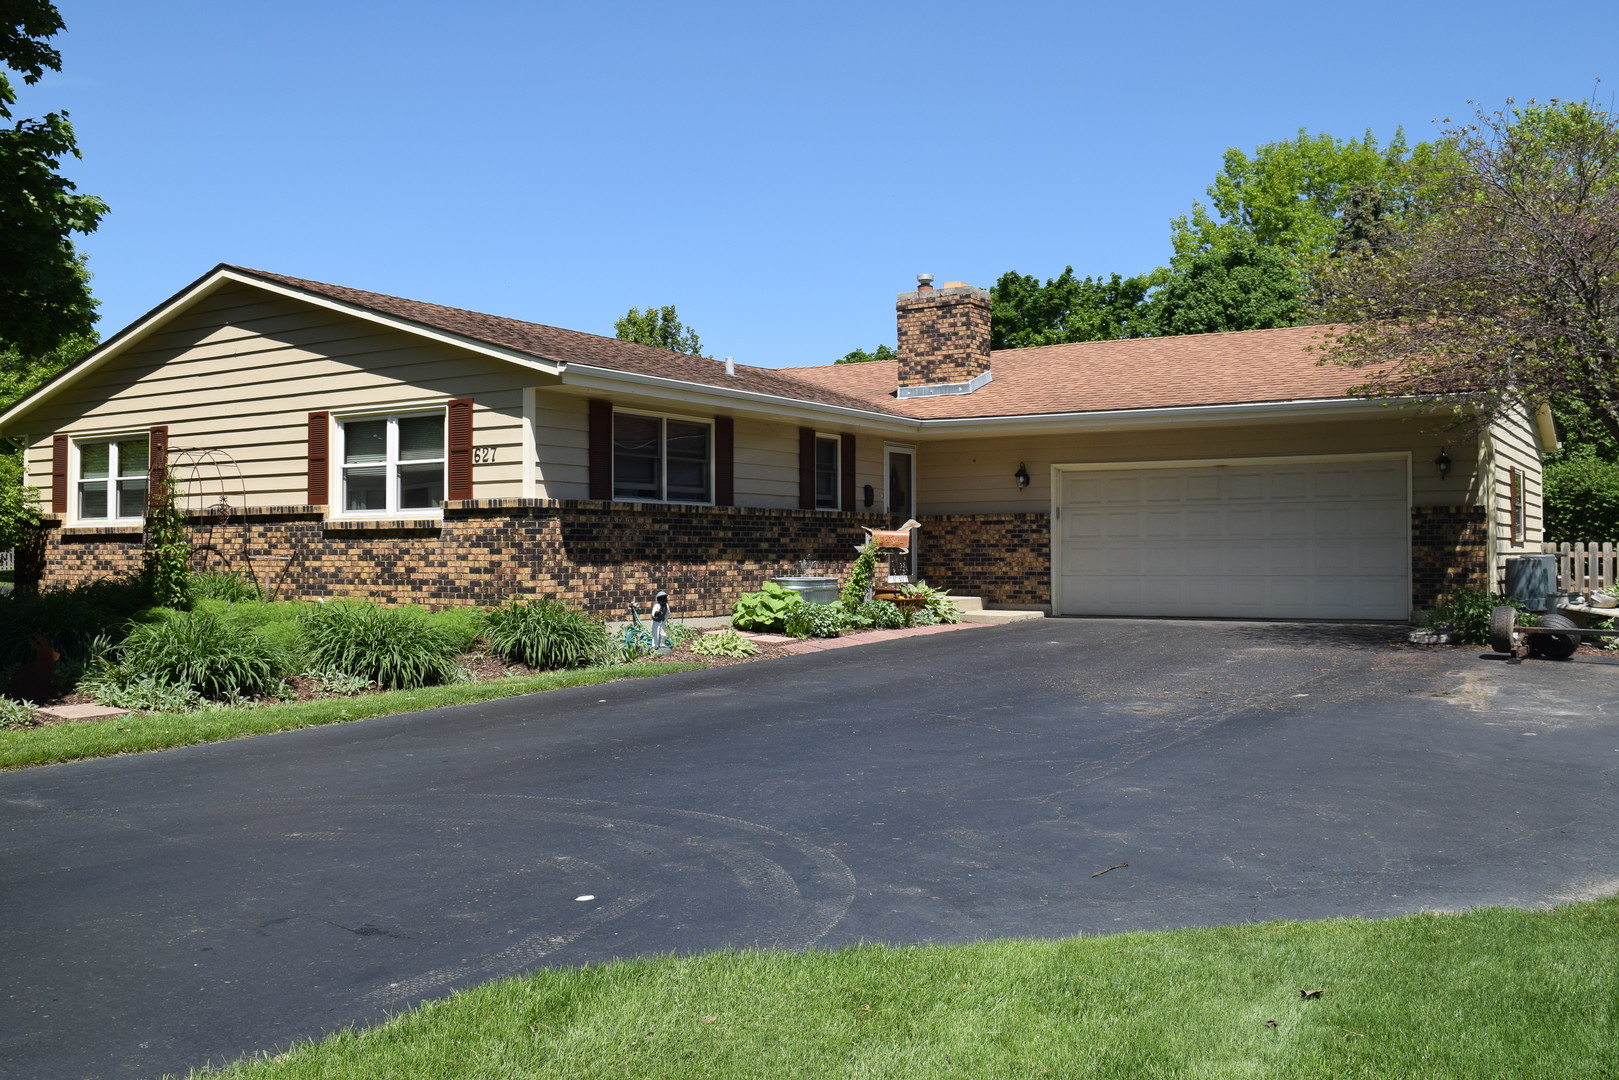 627 Gaslight Drive, Algonquin in Kane County, IL 60102 Home for Sale